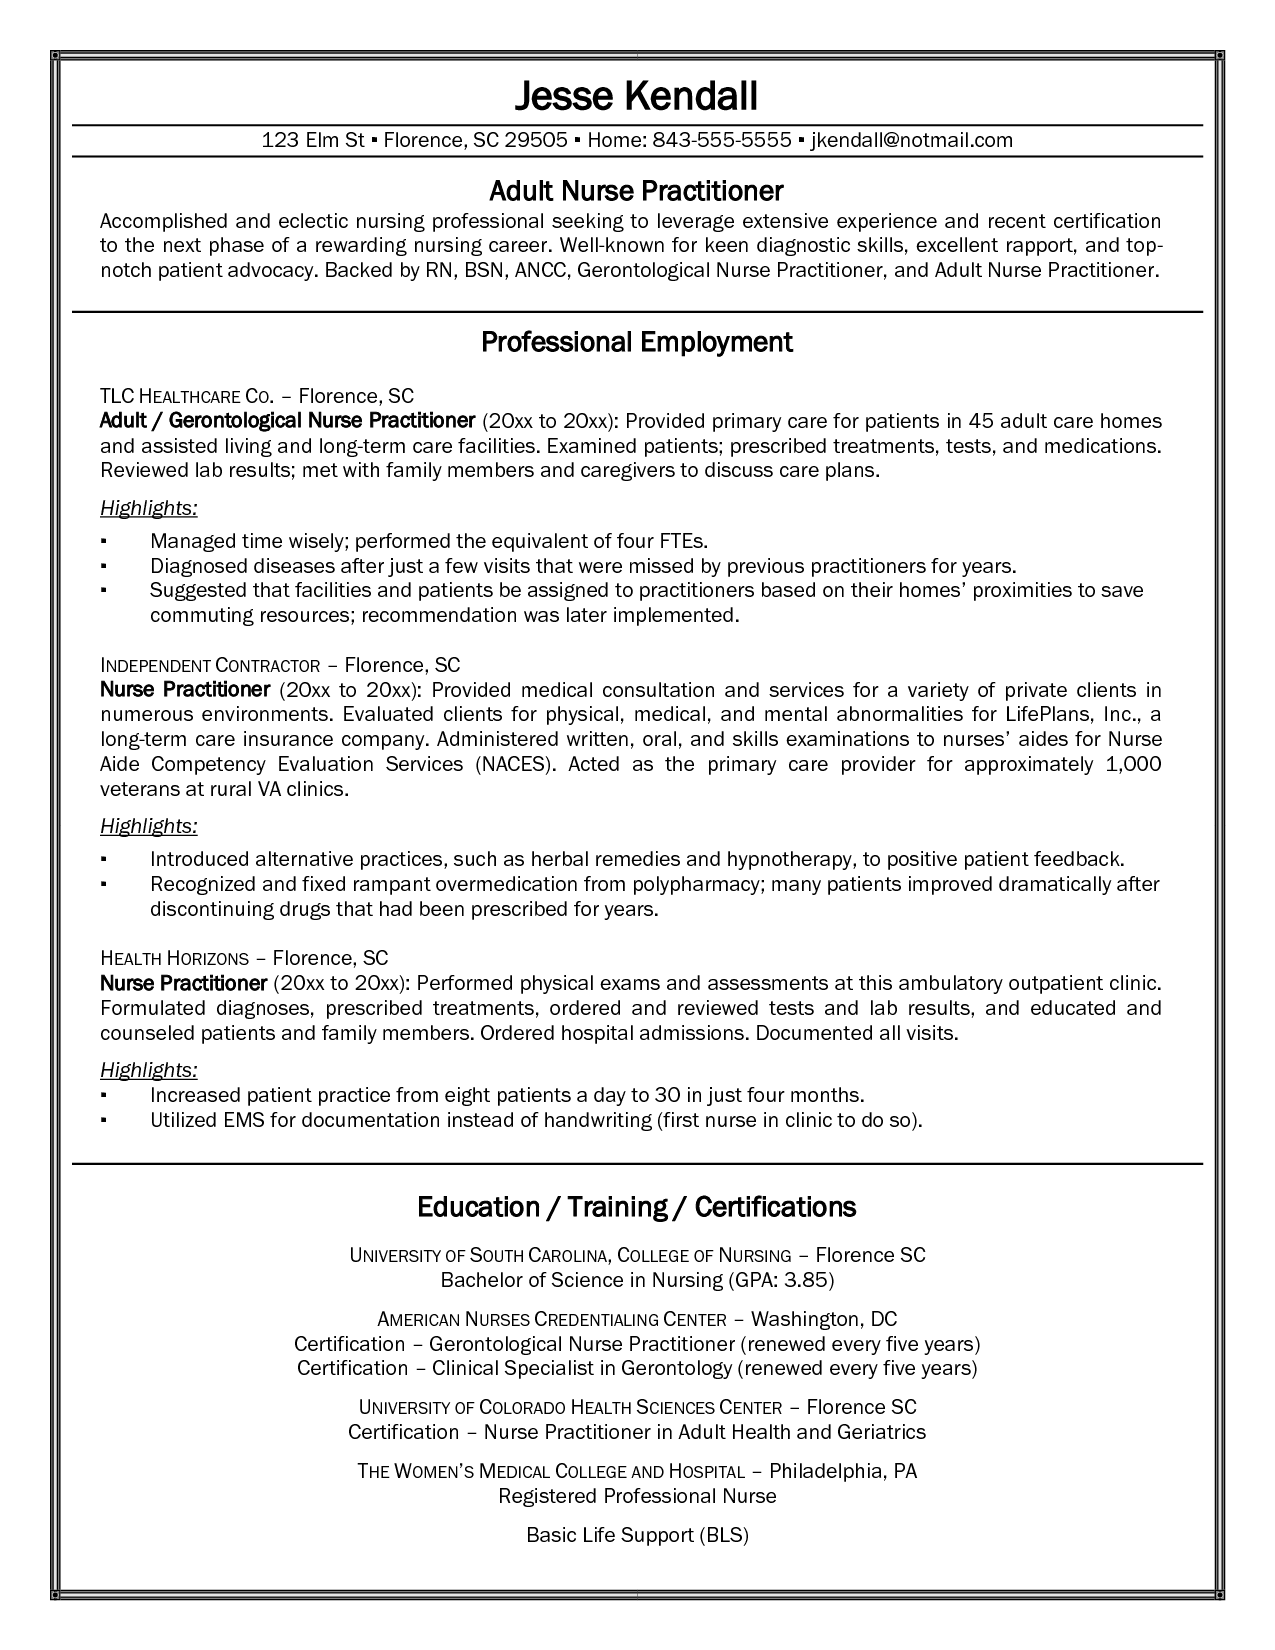 Resume Nurse Practitioner Sample Physician Assistant  Professional Nursing Resume Examples